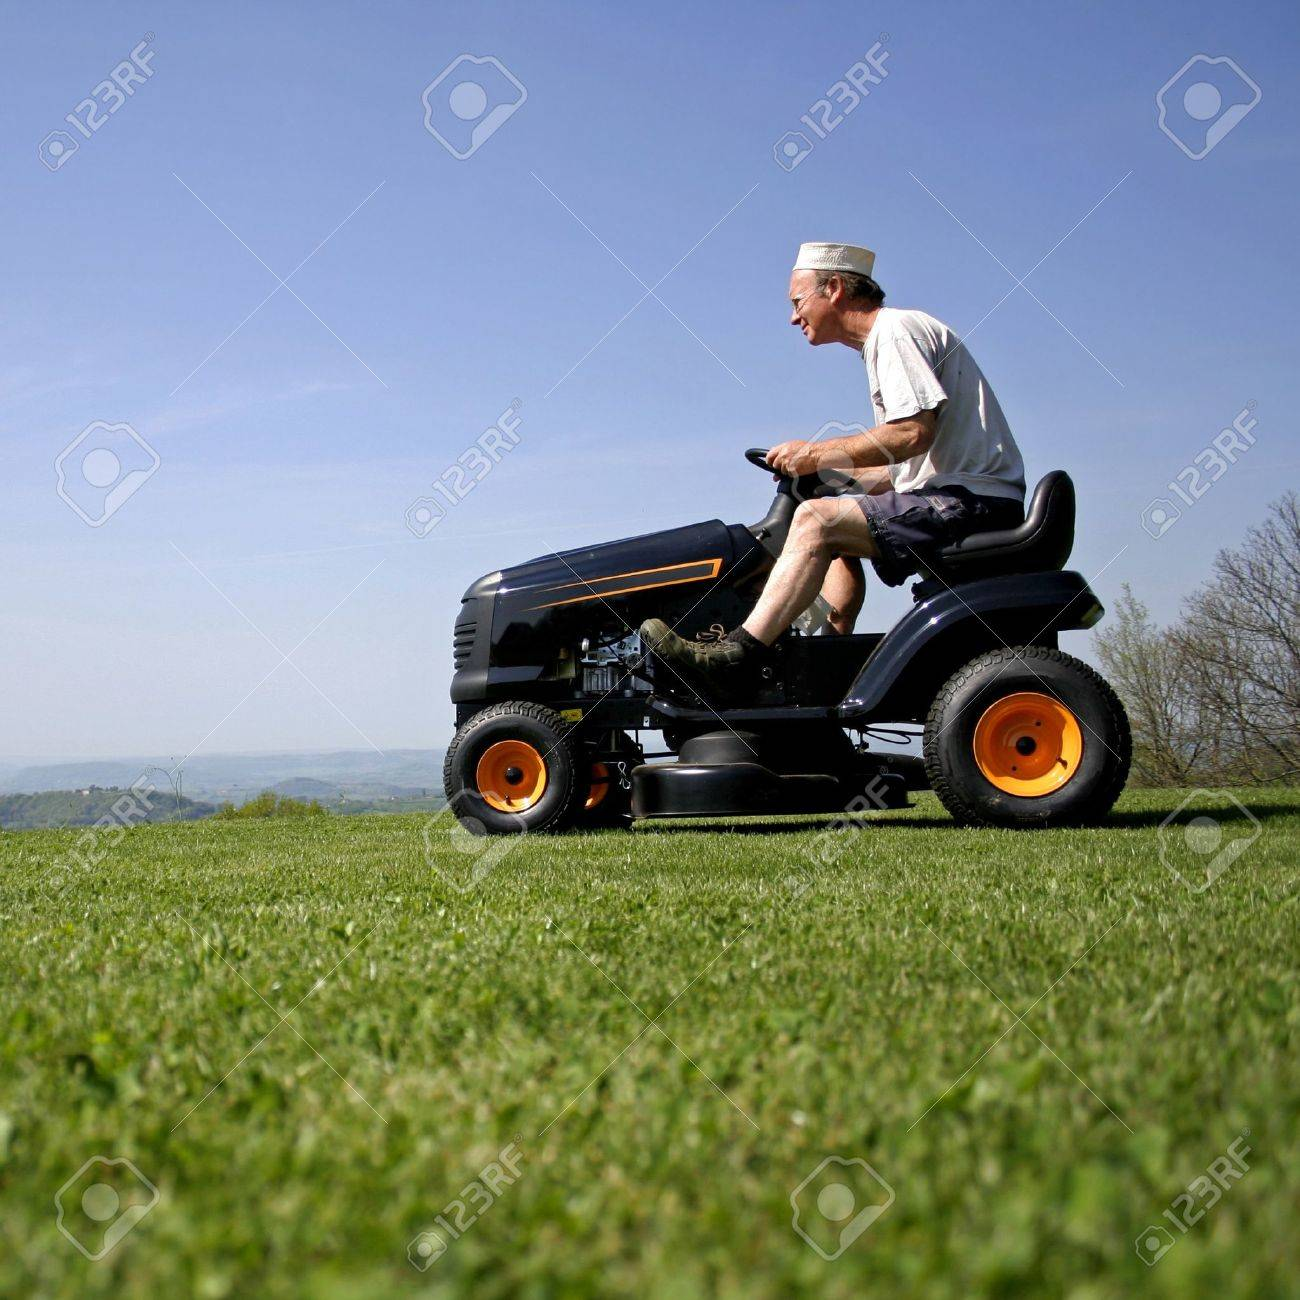 man sitting on a lawnmower in his garden Stock Photo - 4183097